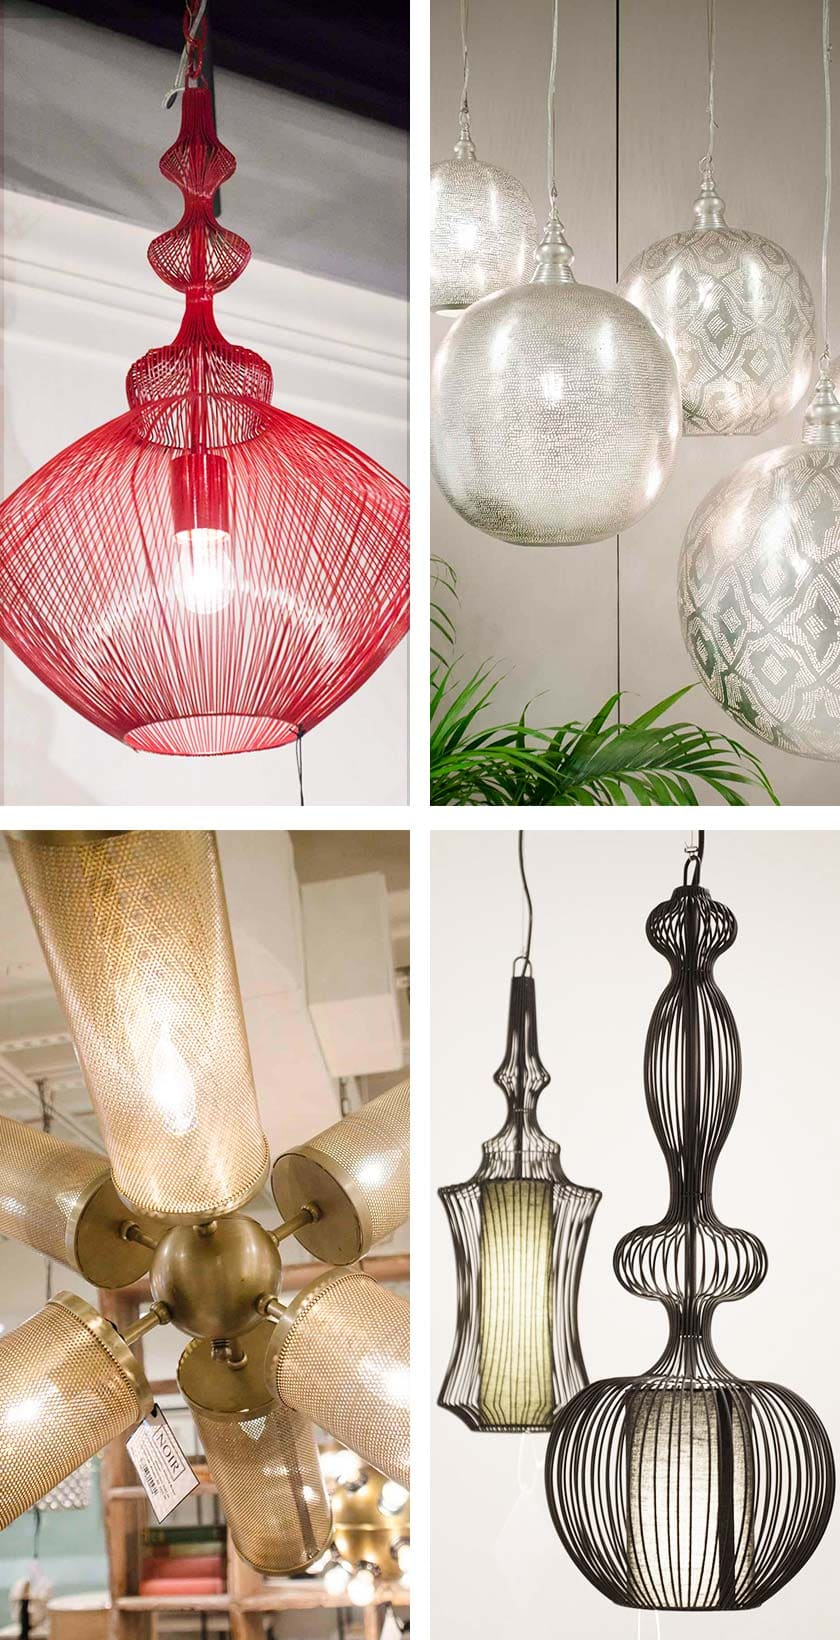 Pierced lighting design trend from AmericasMart on Thou Swell @thouswellblog